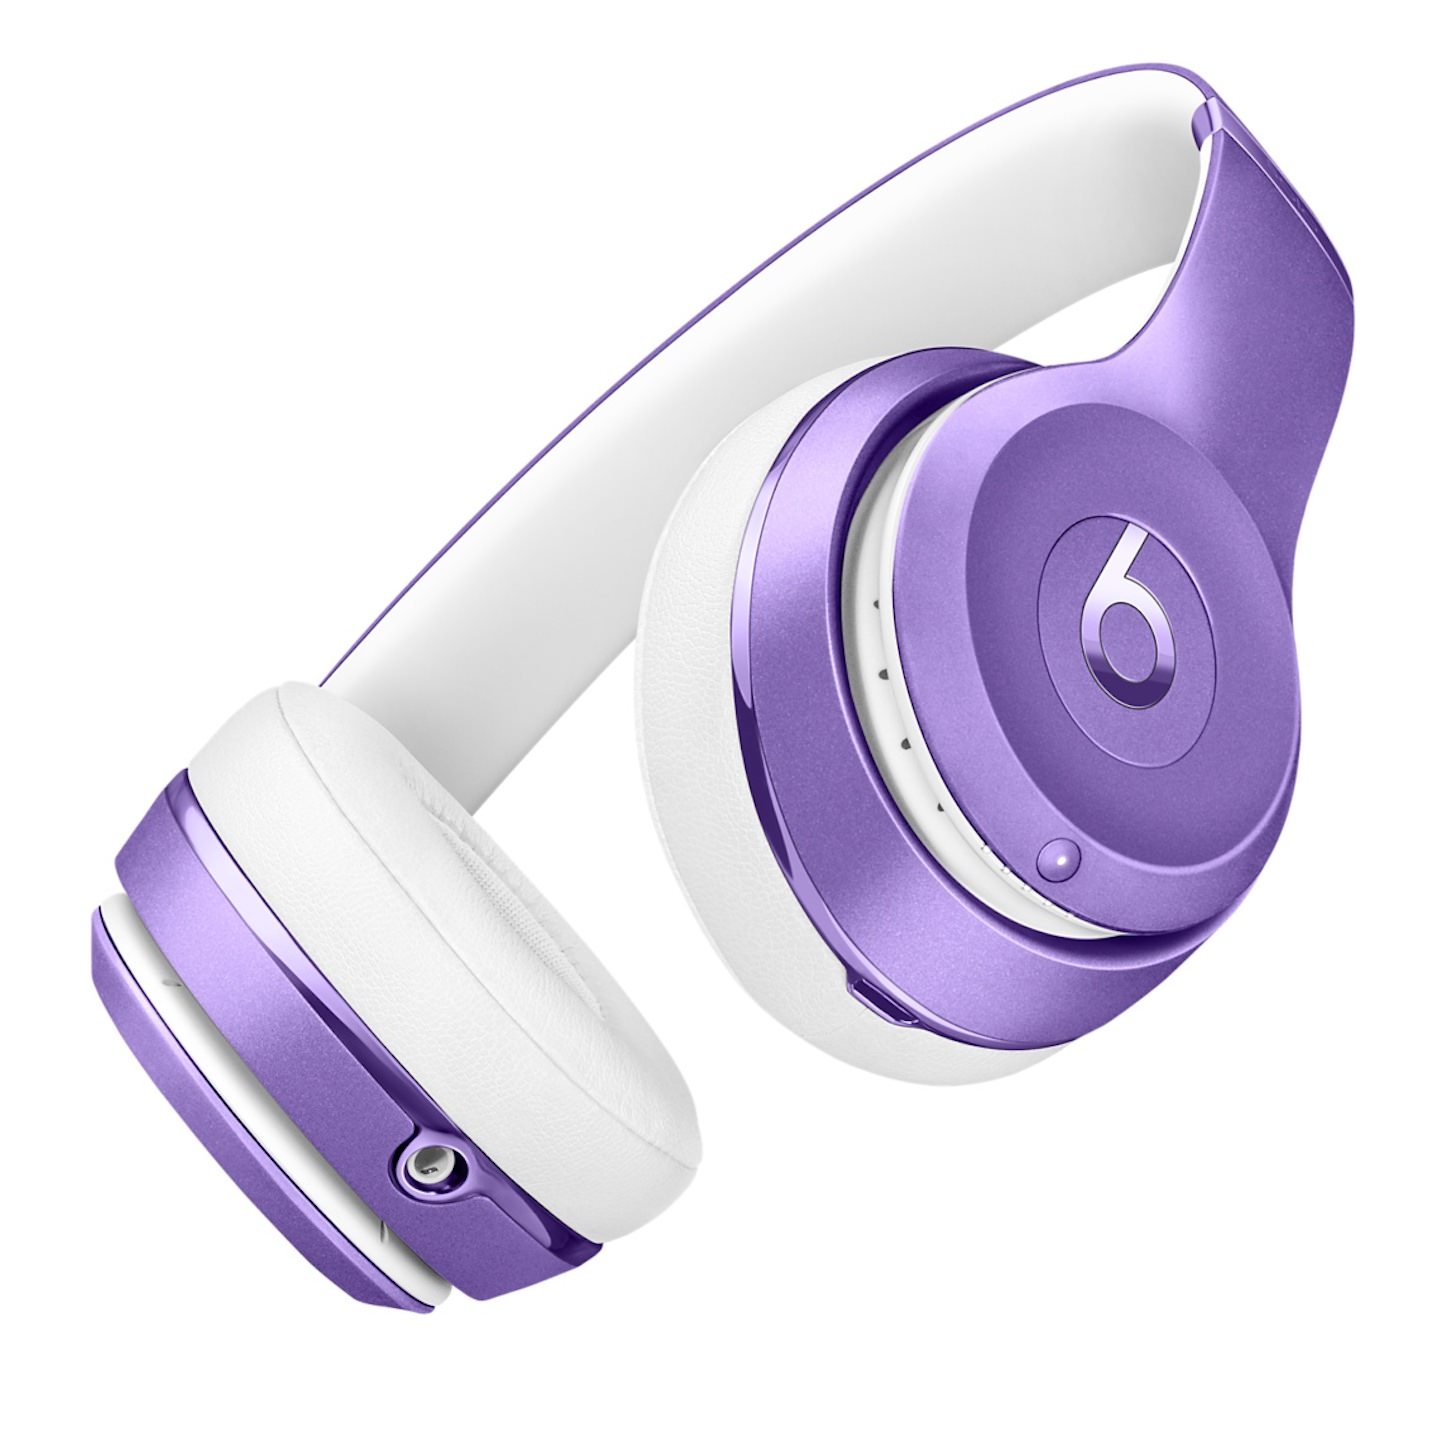 Beats-Solo3-Wireless-On-Ear-Headphones-Ultra-Violet-Collections-3.jpg